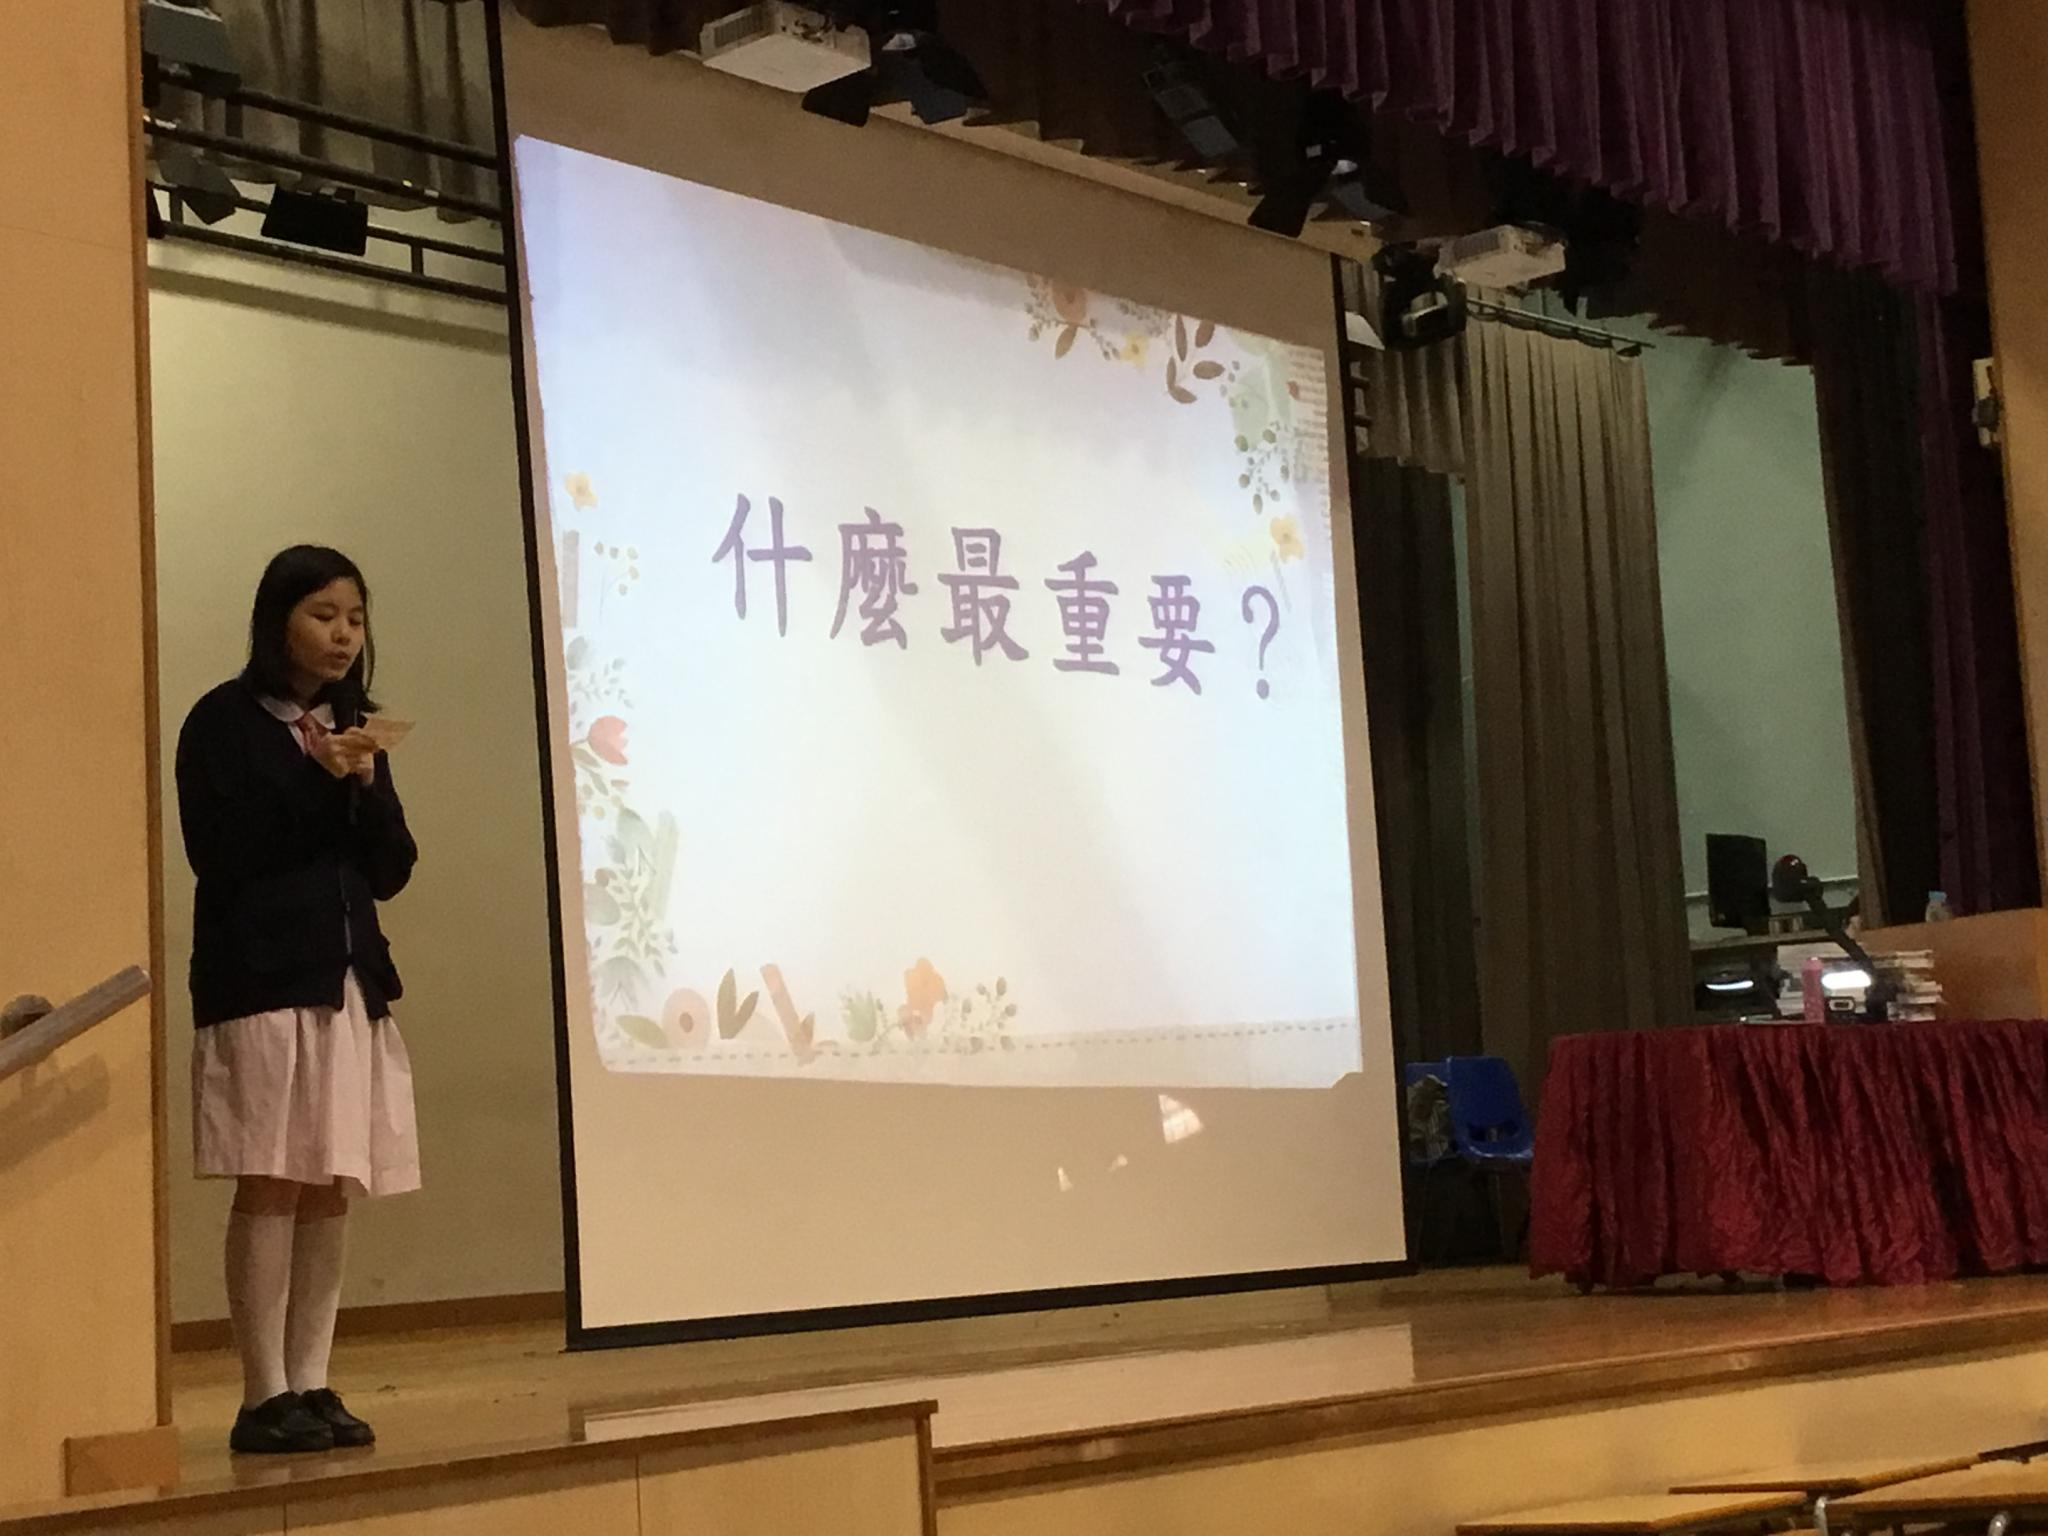 Our student is introducing the guest speaker, Ms. Fan Kien Mei.